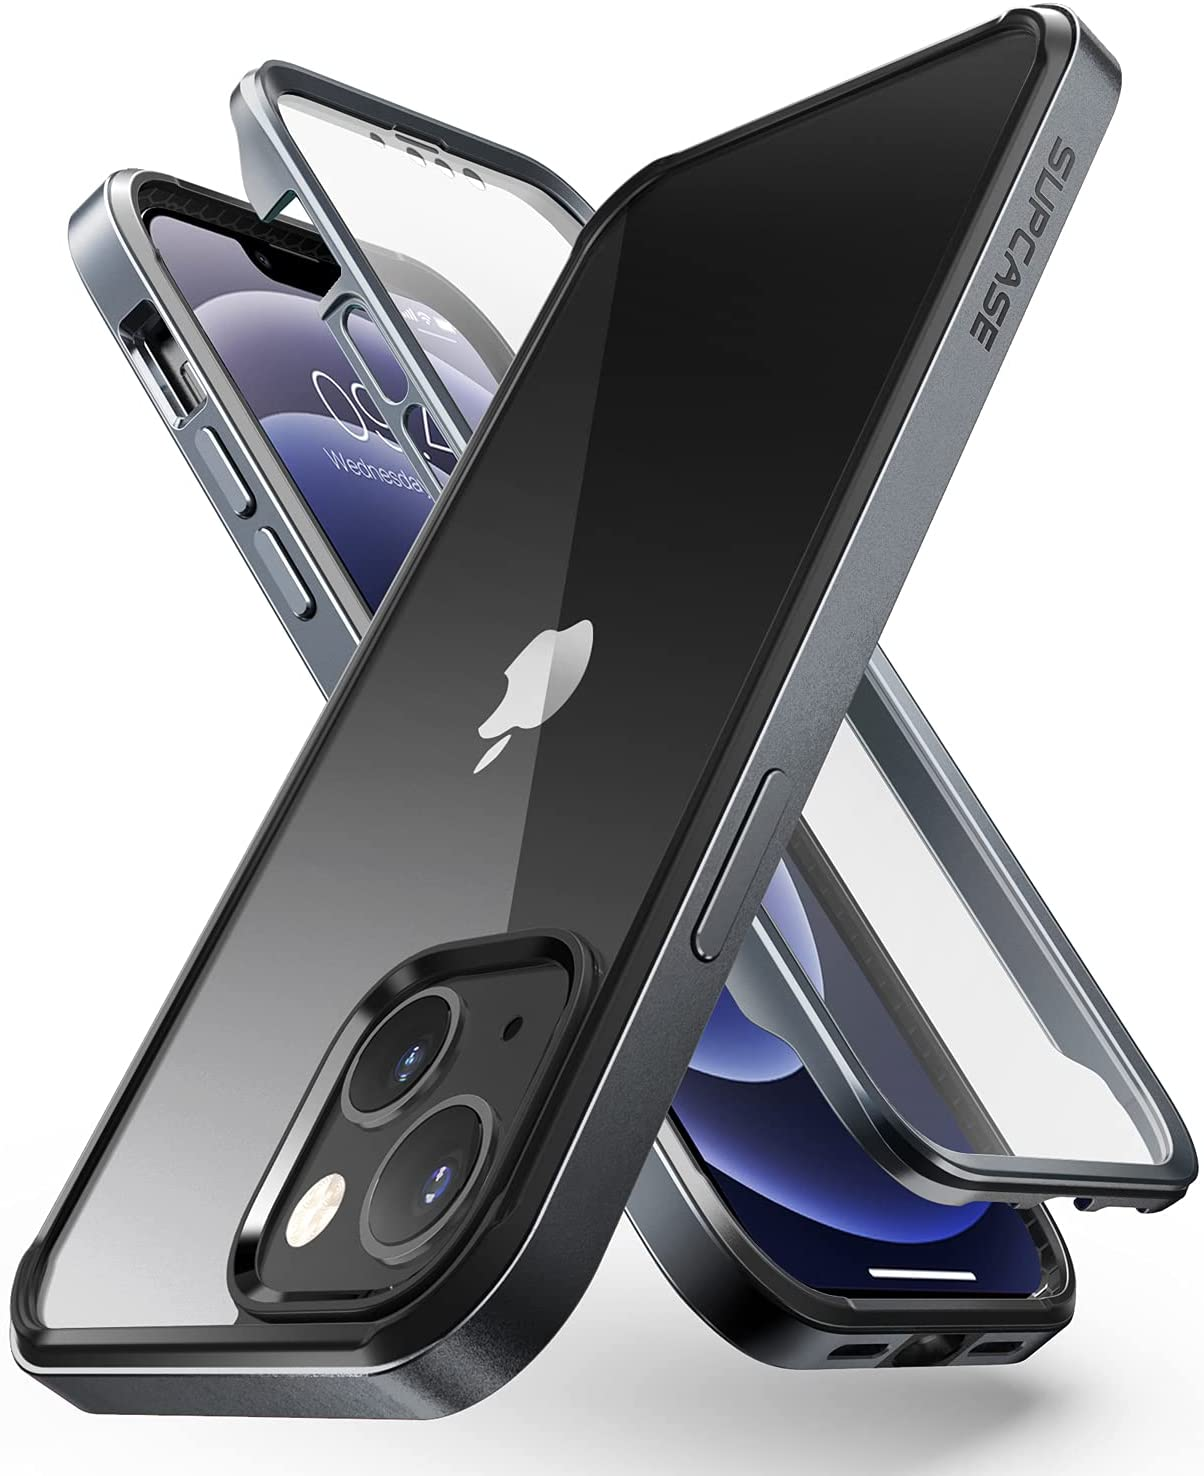 SUPCASE UB Edge Pro Series Case for iPhone 13 (2021 Release) 6.1 Inch, Slim Frame Clear Protective Case with Built-in Screen Protector (Black)